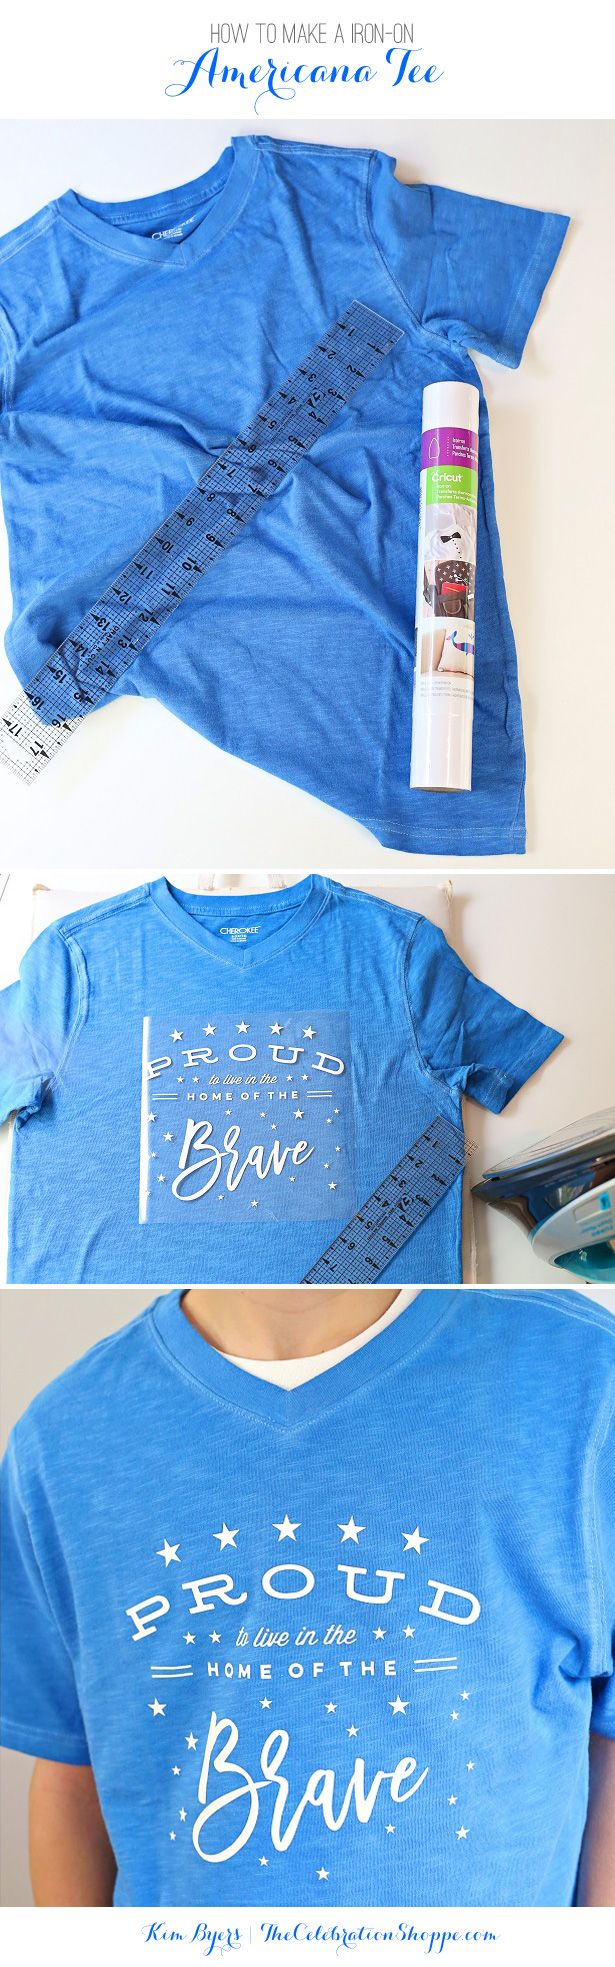 Make A DIY Iron-On Tee For 4th of July | Kim Byers